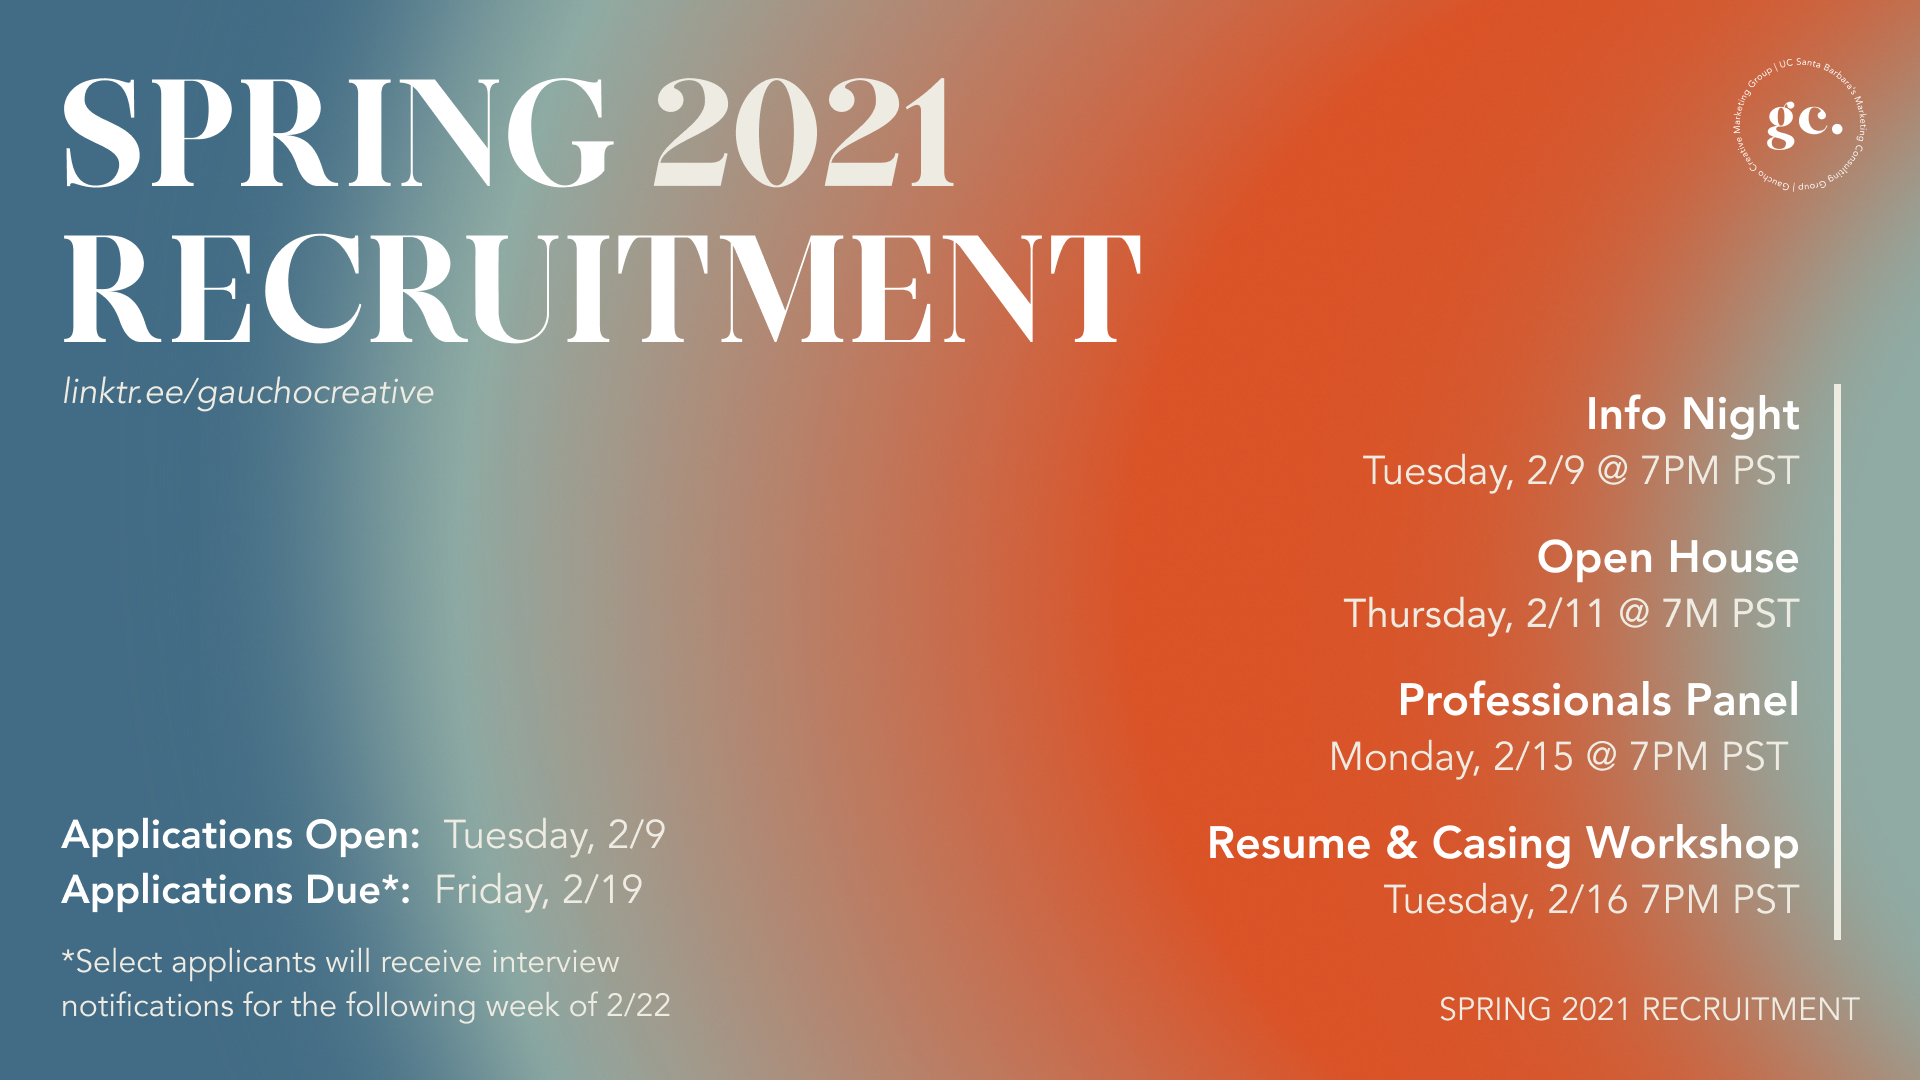 Gaucho Creative's Spring 2021 Recruitment banner with dates of events. Will be updated shortly with Fall events.